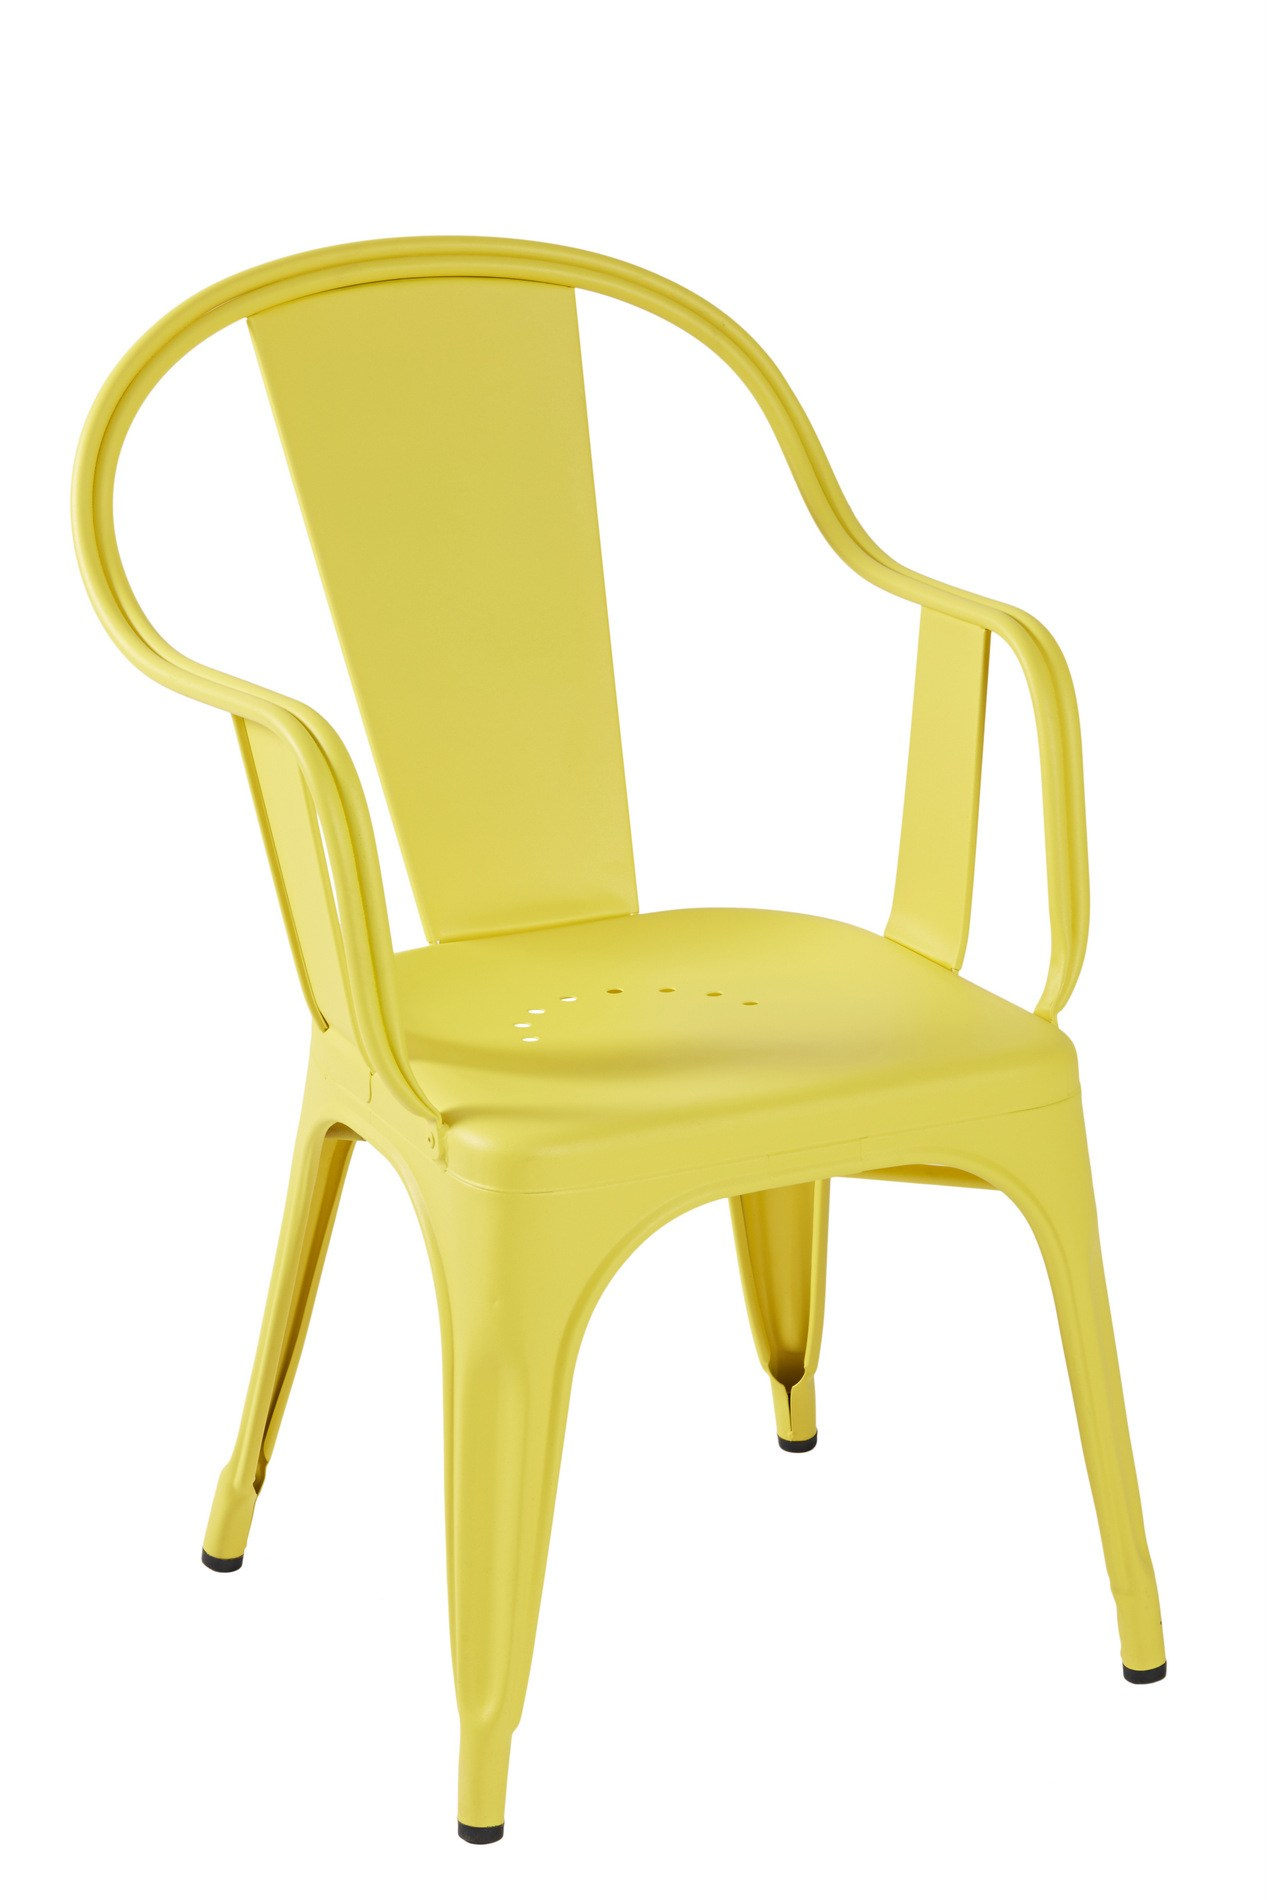 steel chair specification upholstered dining with acrylic legs c metal by tolix design xavier pauchard